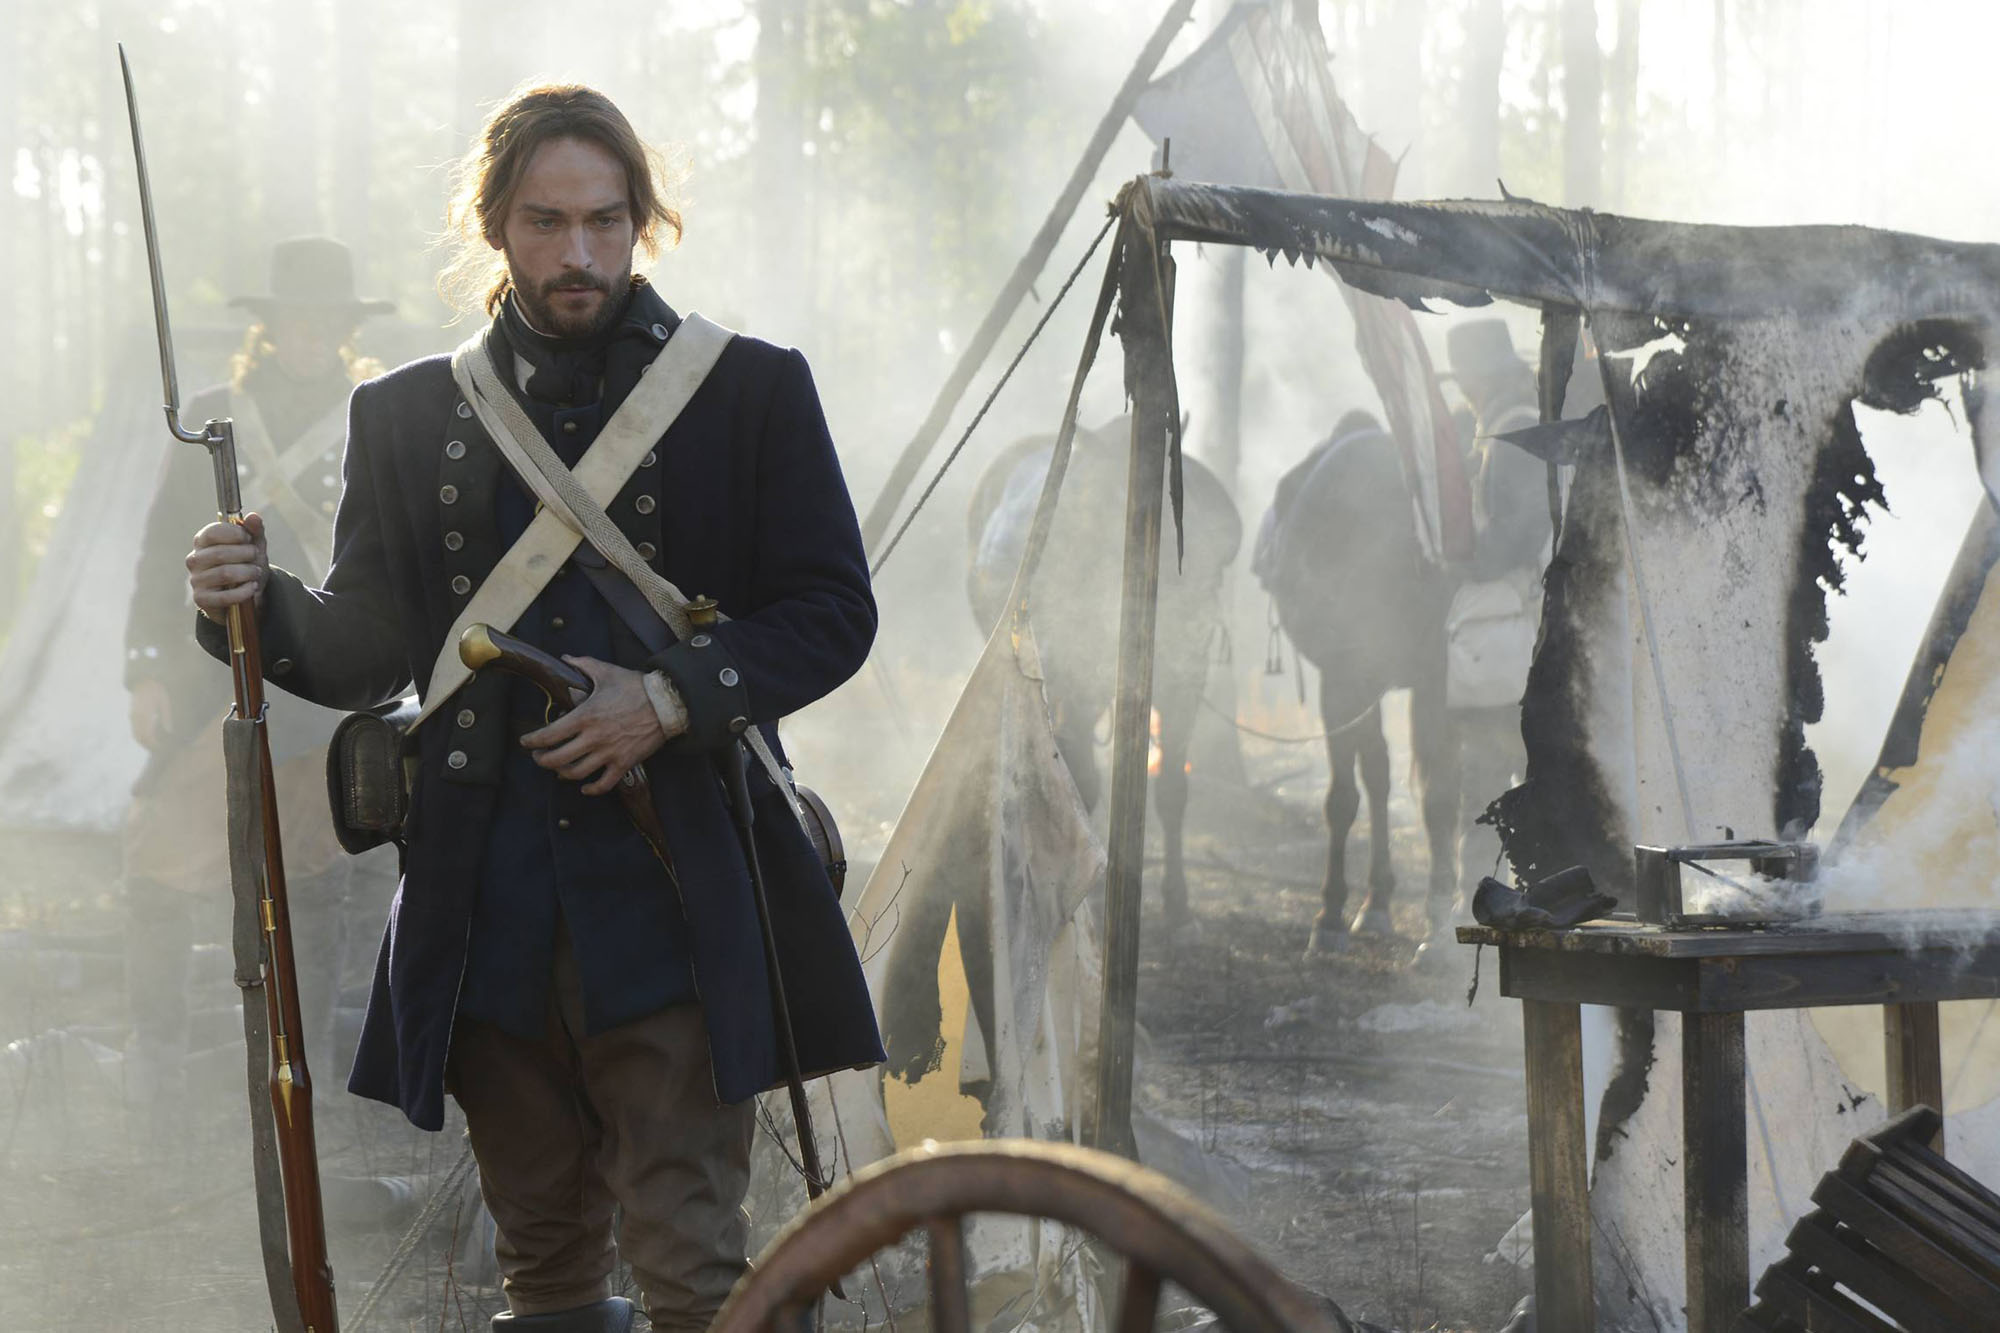 After shaking up the cast, Fox decides to bring Sleepy Hollow back ...